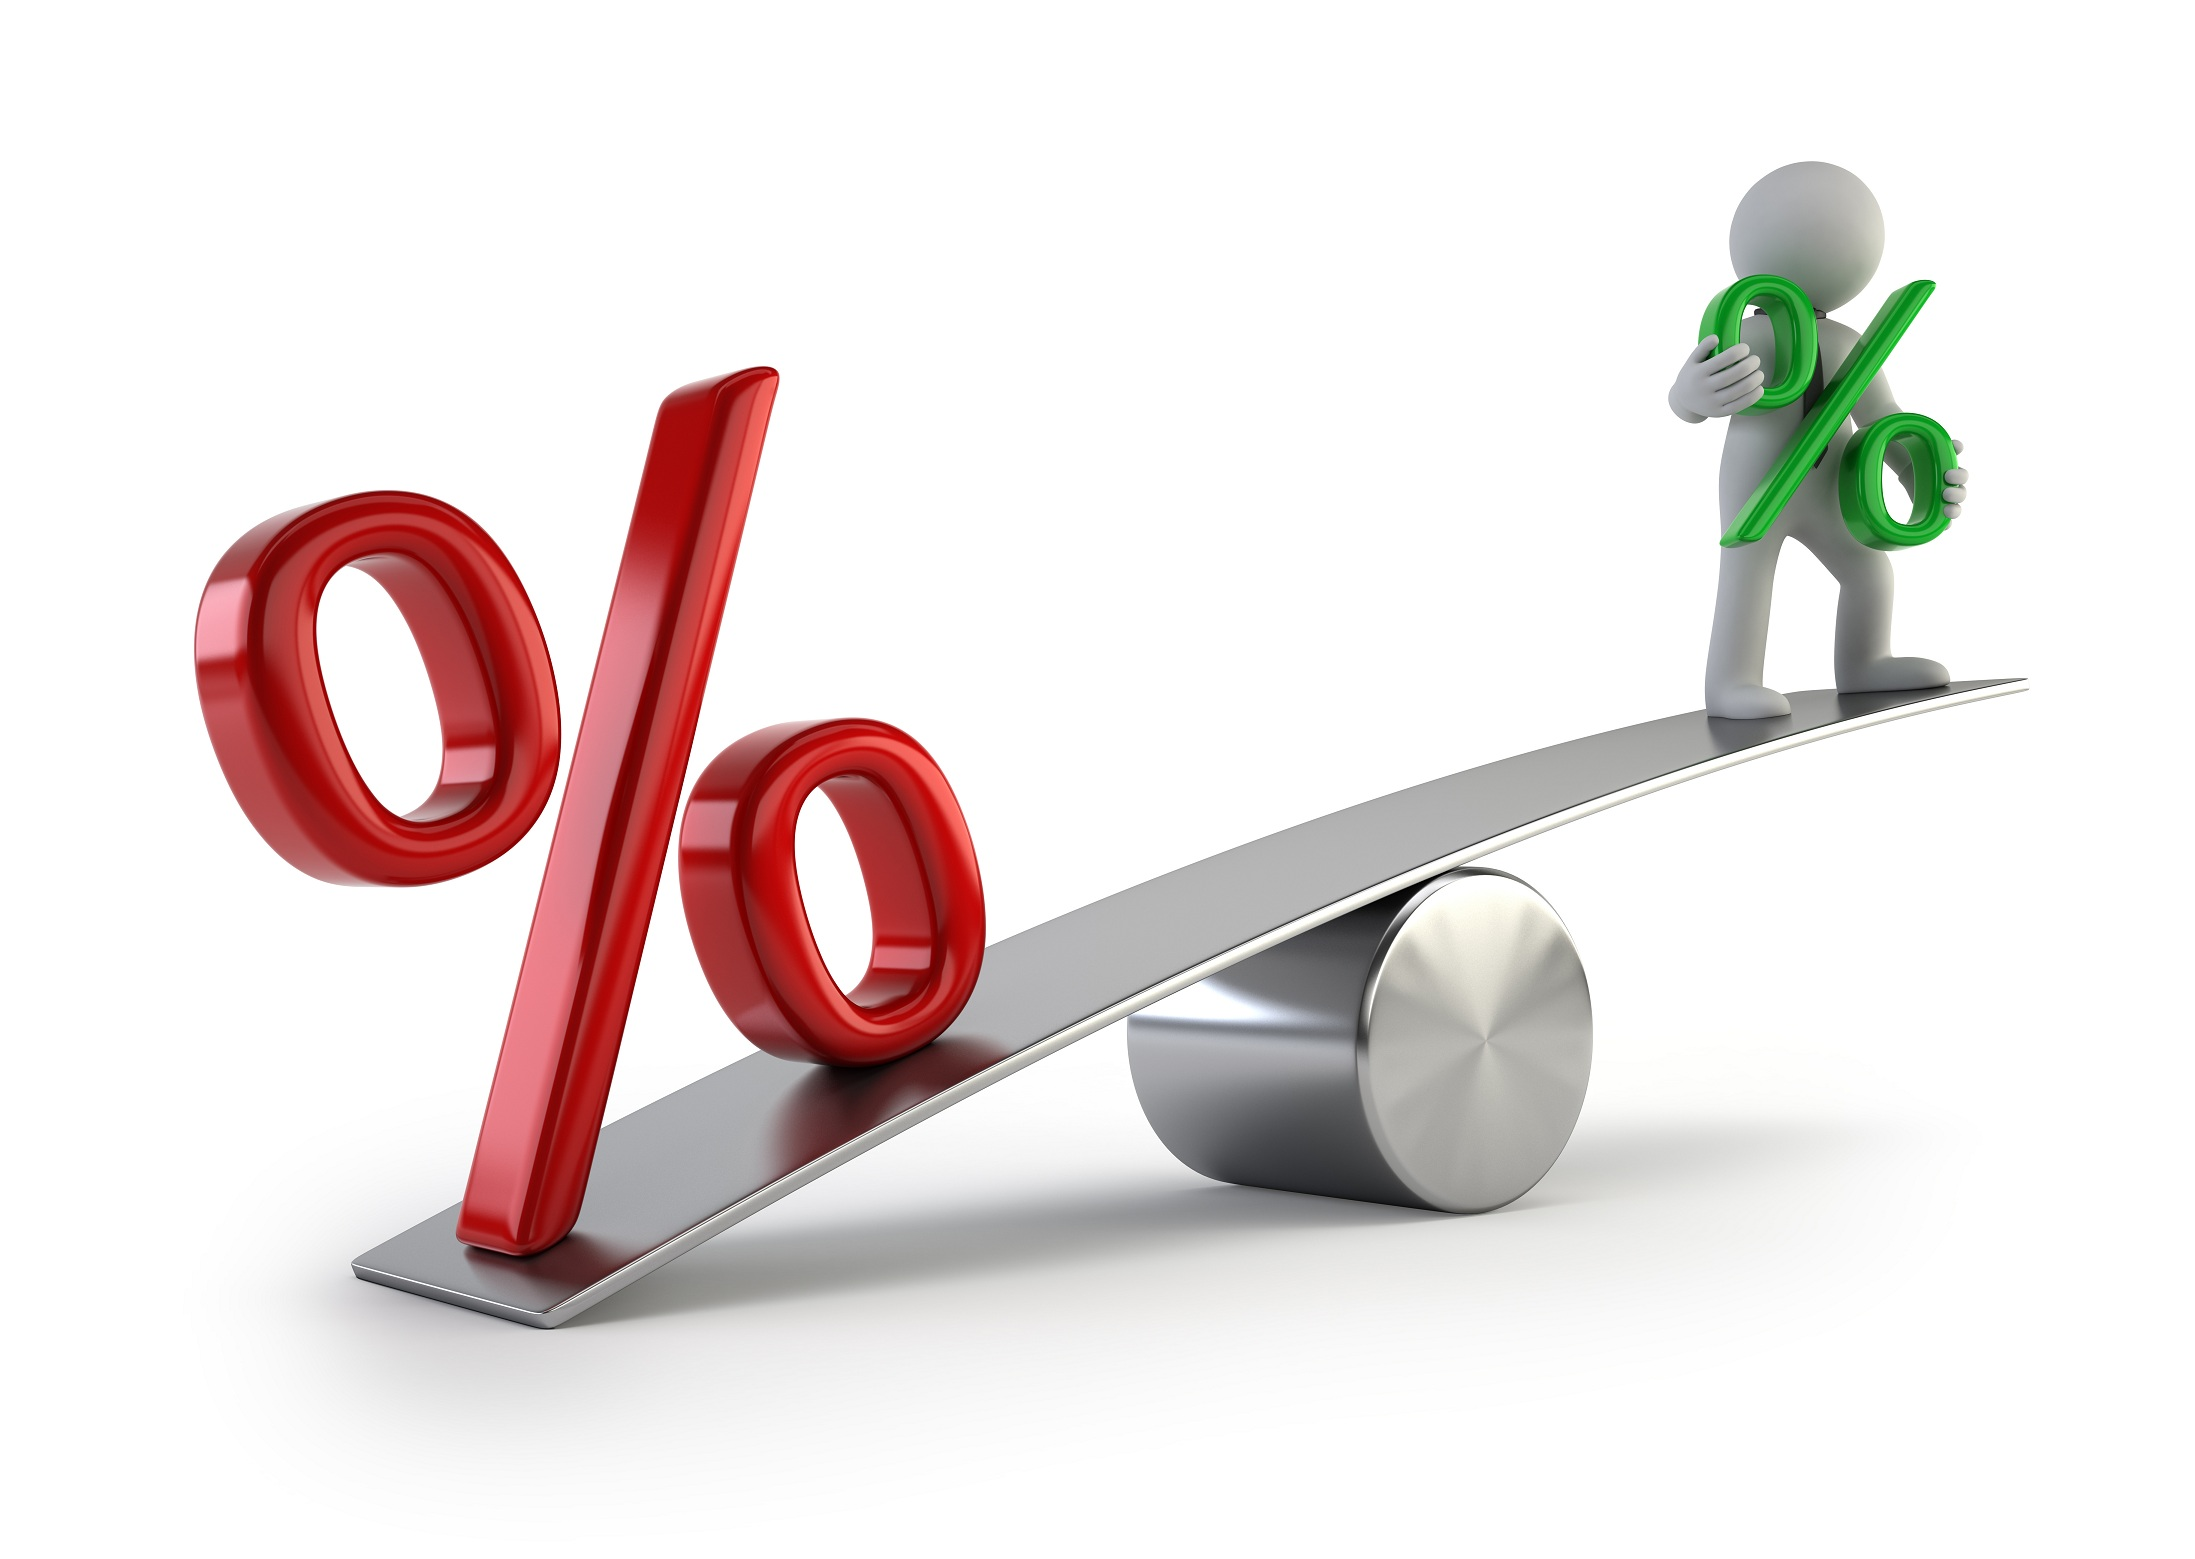 Lowest Rates Ever, Now…